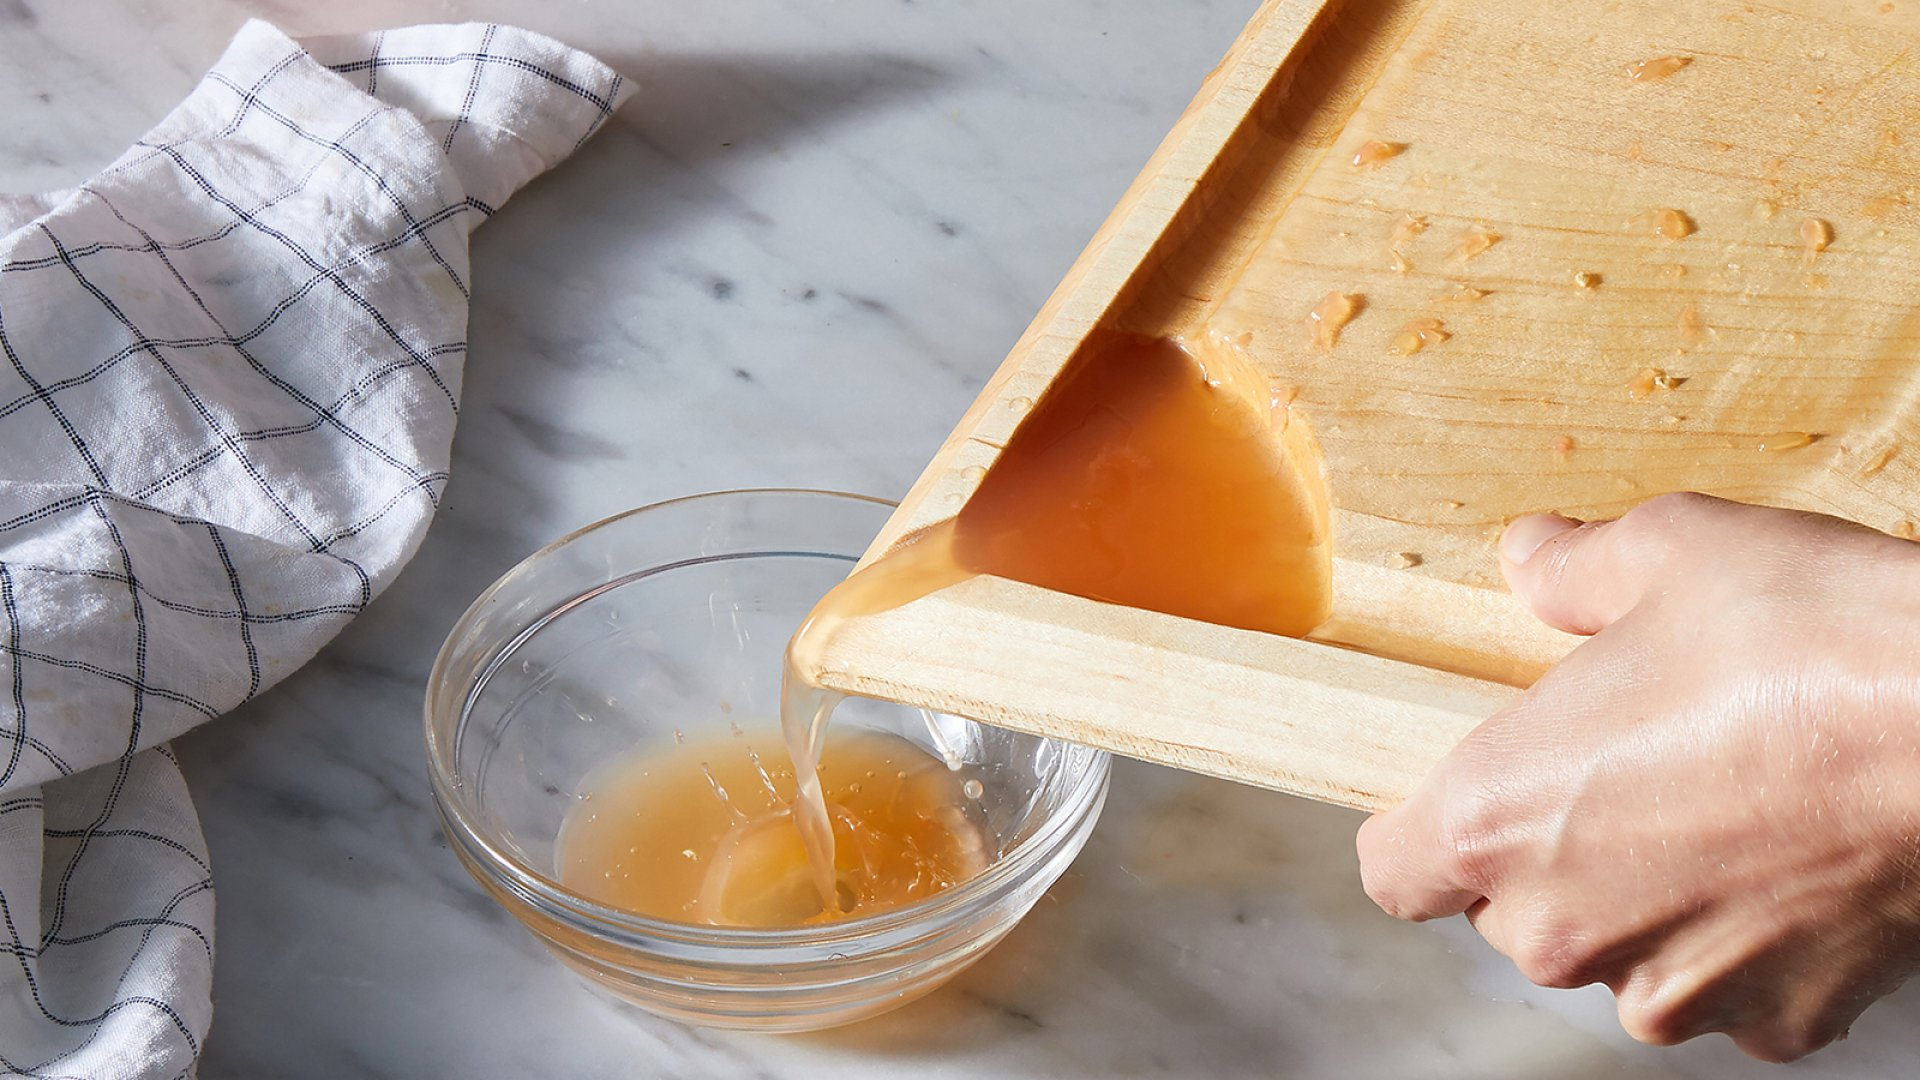 The Food52 cutting board was designed with deep grooves and a spout to collect and pour residual juices.